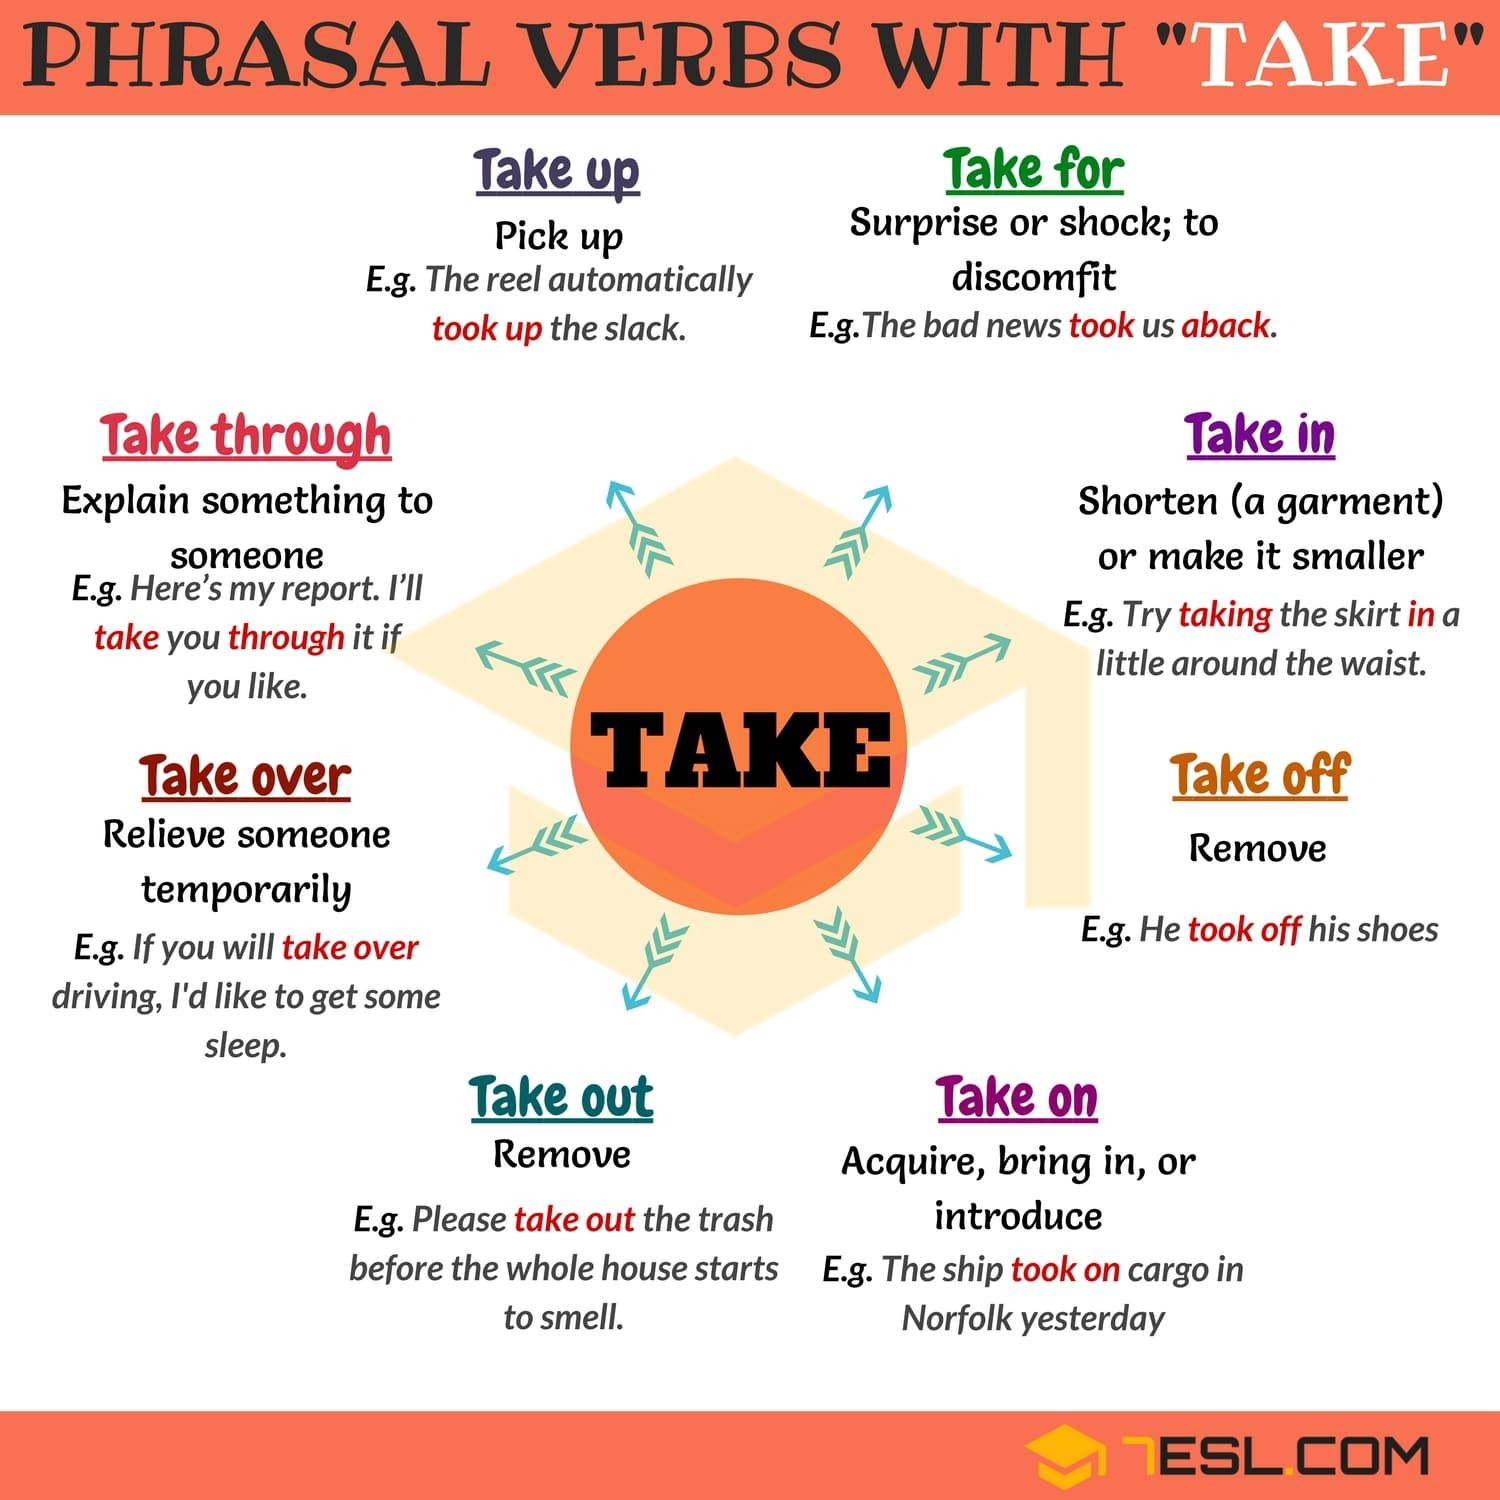 60+ Phrasal Verbs With TAKE: Take Away, Take Back, Take Down, Take Up... -  7 E S L | Learn english, Learn english words, English vocabulary words